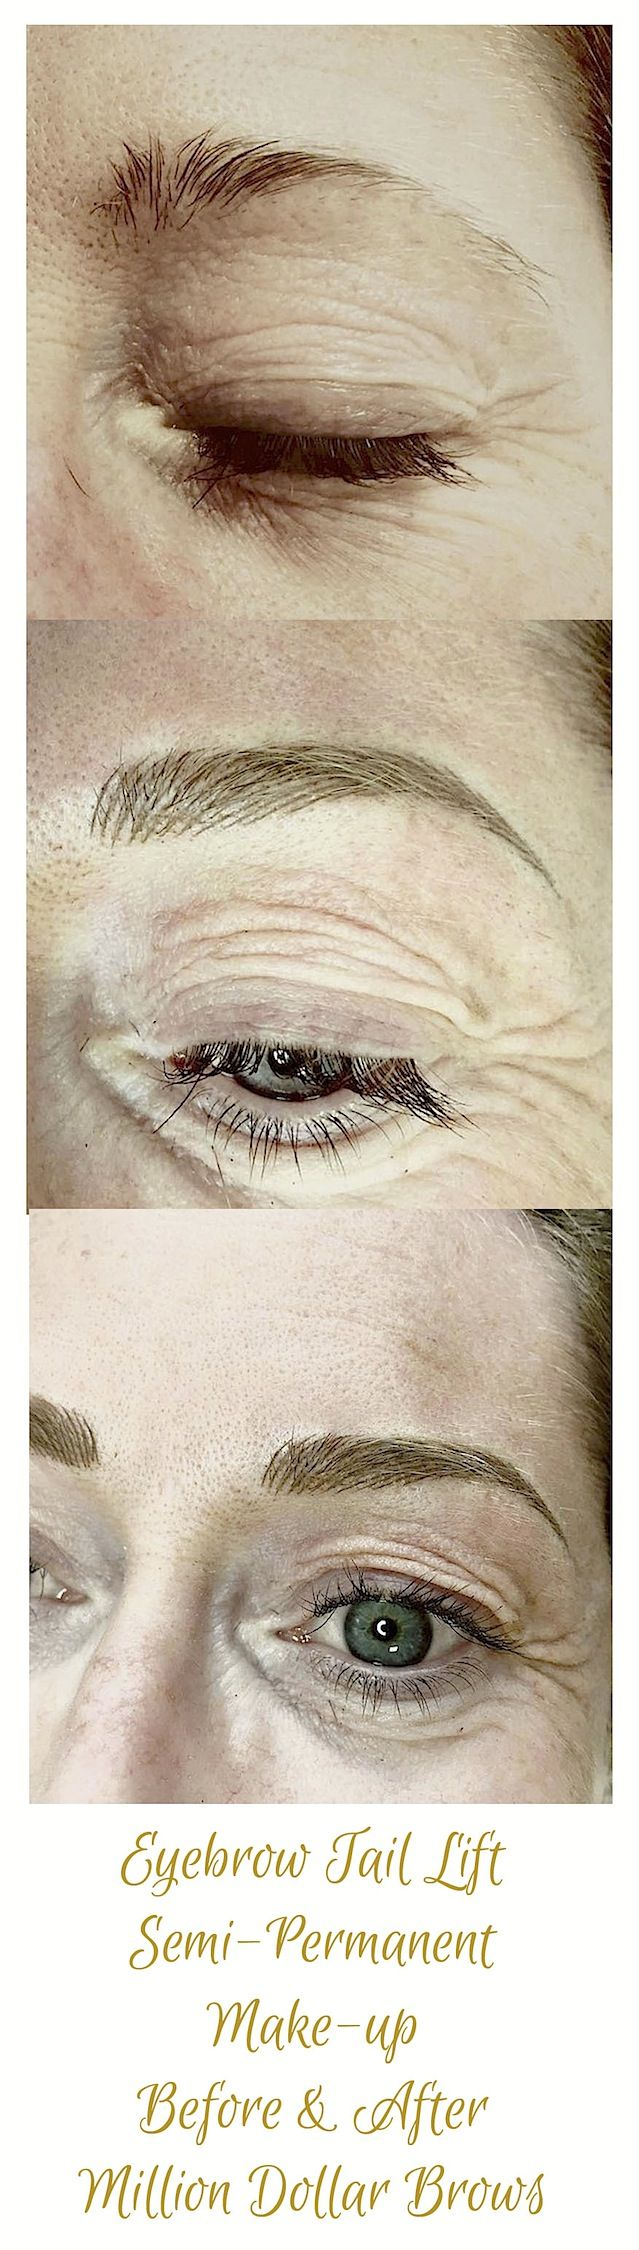 This picture shows an eyebrow tail lift restructuring treatment using semi-permanent make-up or eyebrow tattooing. The client's eyebrows have been realigned and then balanced to give old tired, over plucked eyebrows a brand look and feel. The brow tail is lifted using the face and eyes natural symmetry as a guide to creating beautiful new brows. Mary Spence at the Million Dollar Brows clinic is renowned for being one of the best in the business at the brow tail lift technique.